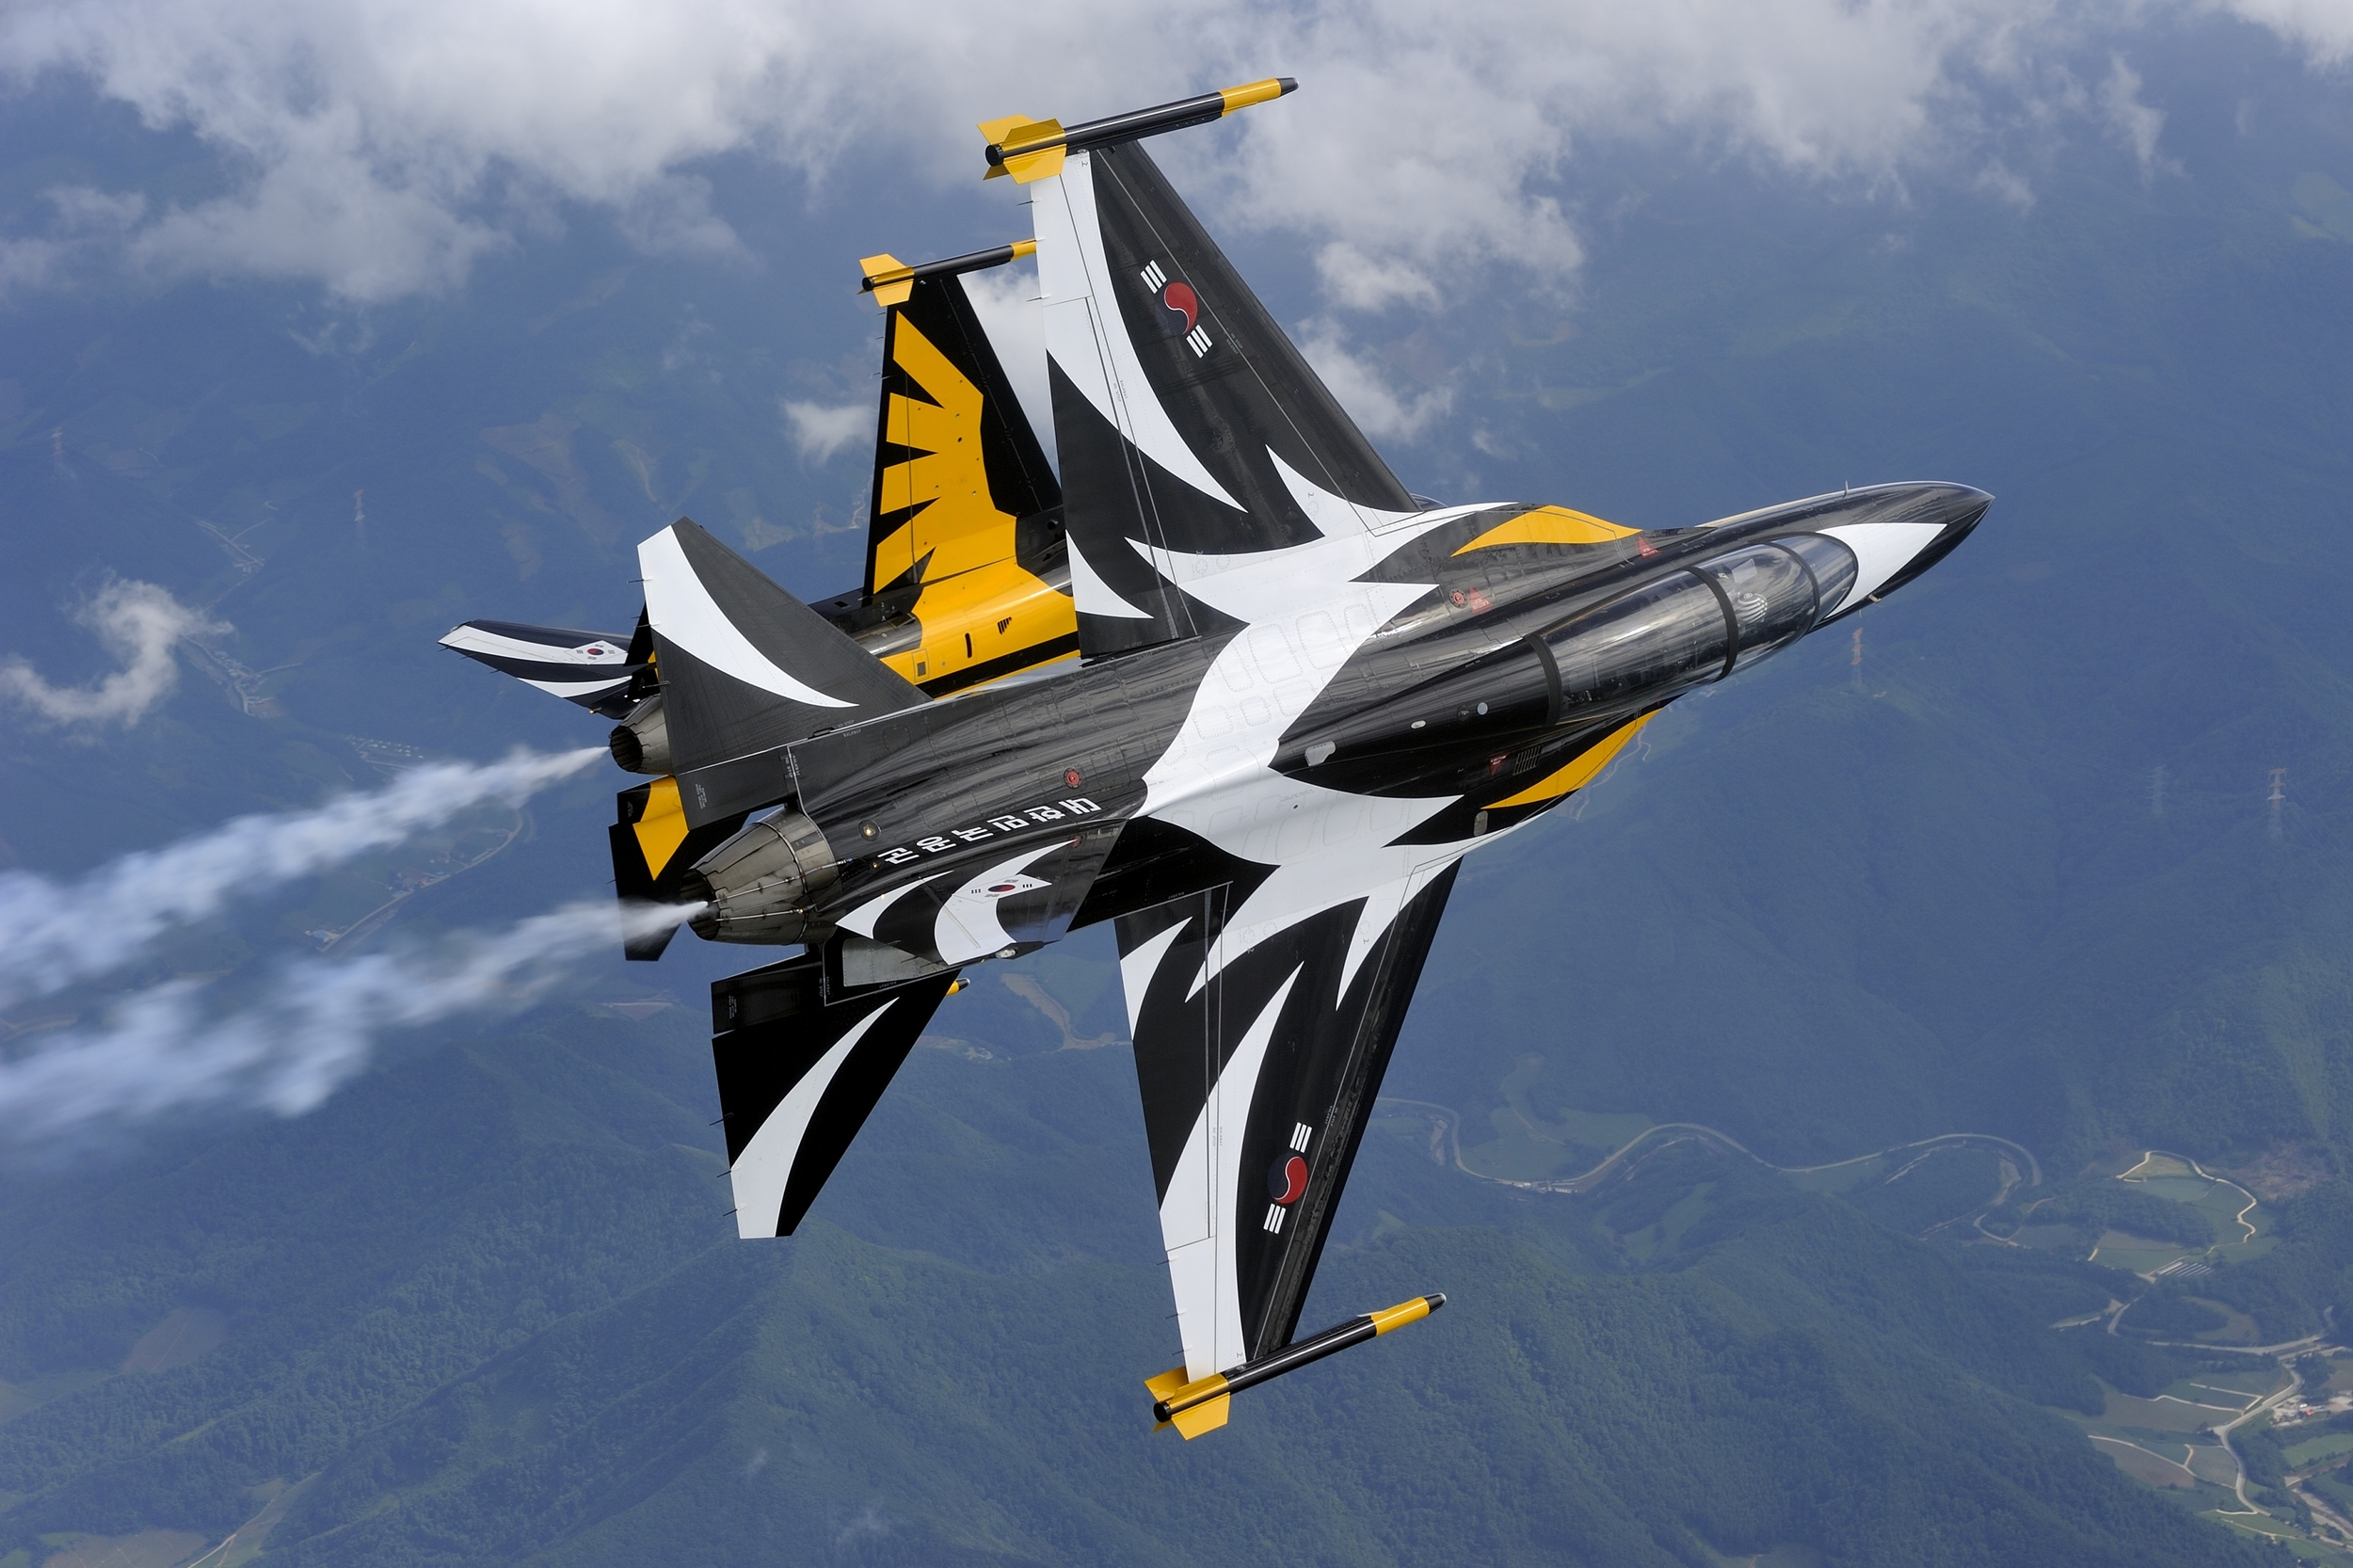 File:T-50B Blackeagles Demo Flight (12201235635).jpg